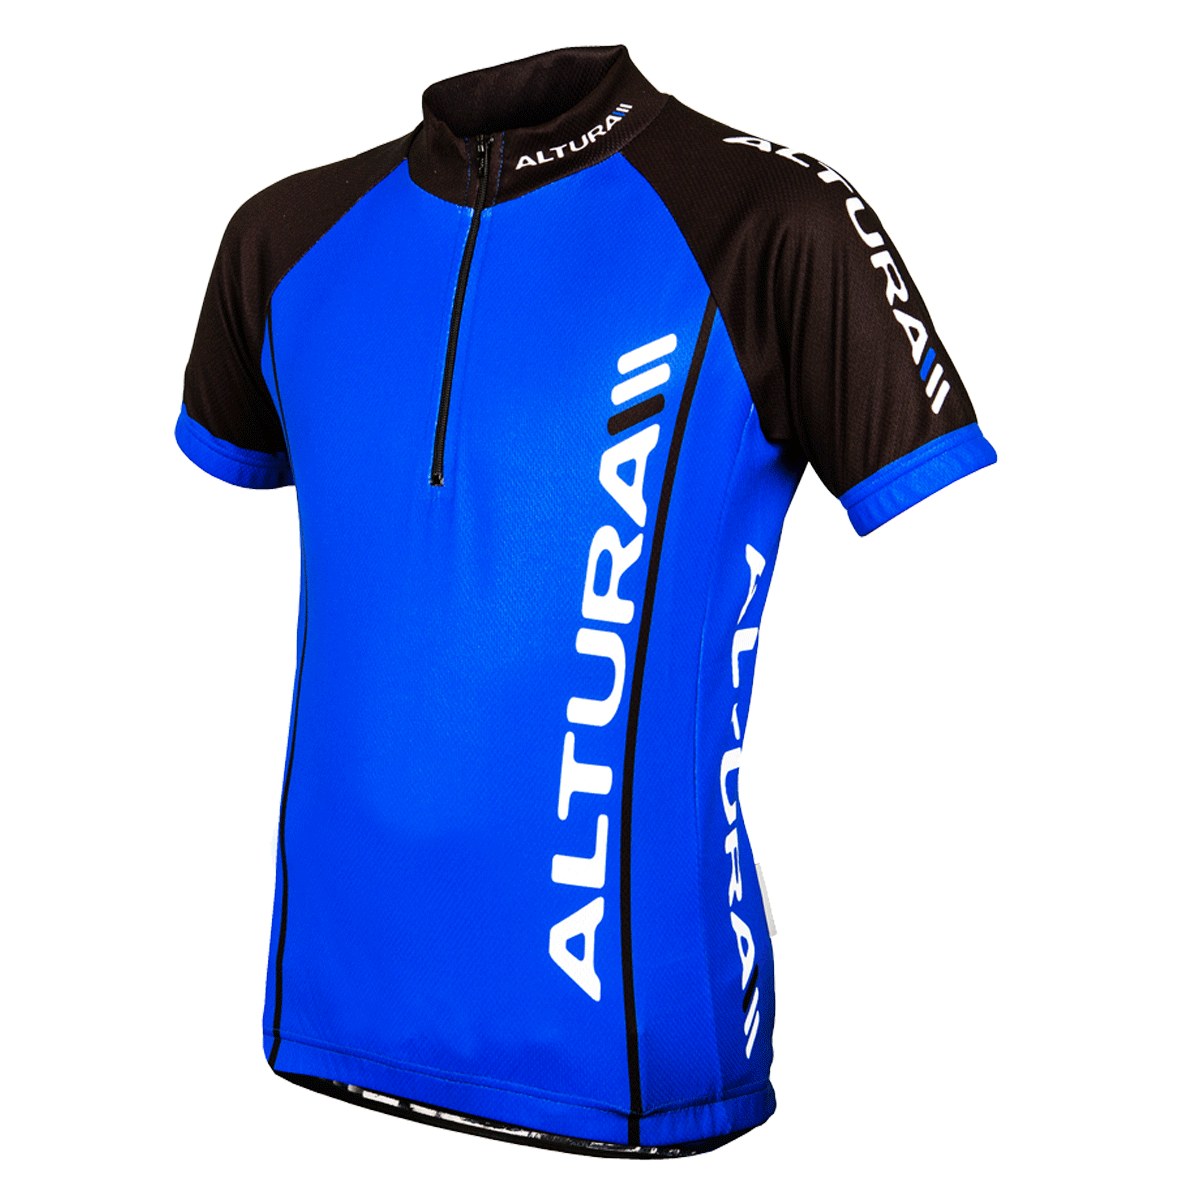 ALTURA CHILDREN'S TEAM SHORT SLEEVE JERSEY 2016: BLUE 5-6YRS